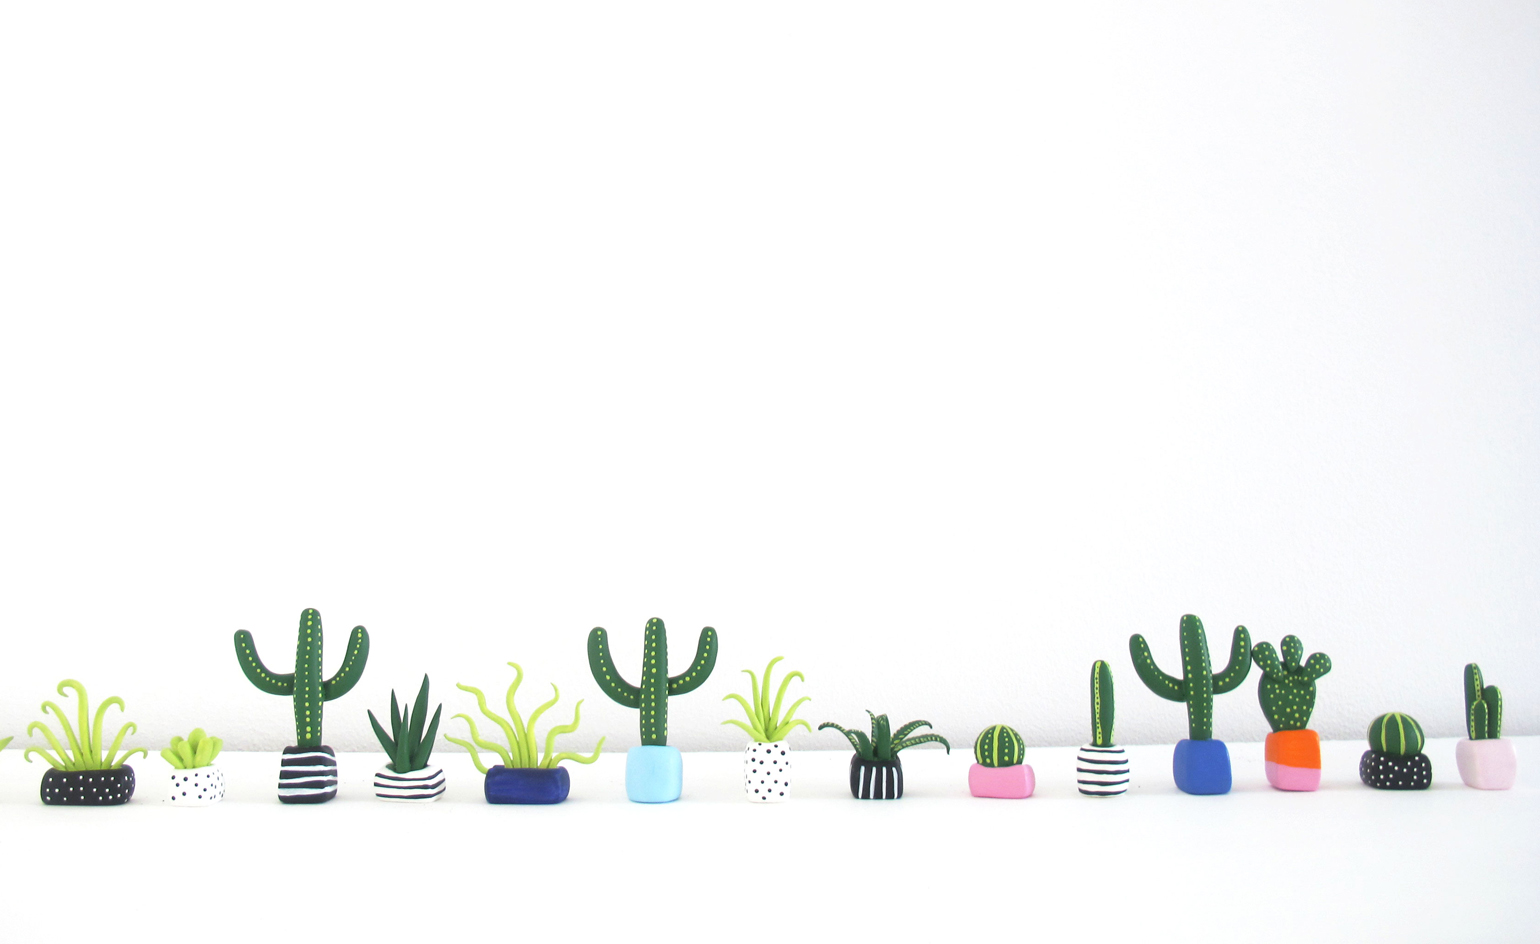 Designer Boe Holder S Mini Plants Cacti And Succulents